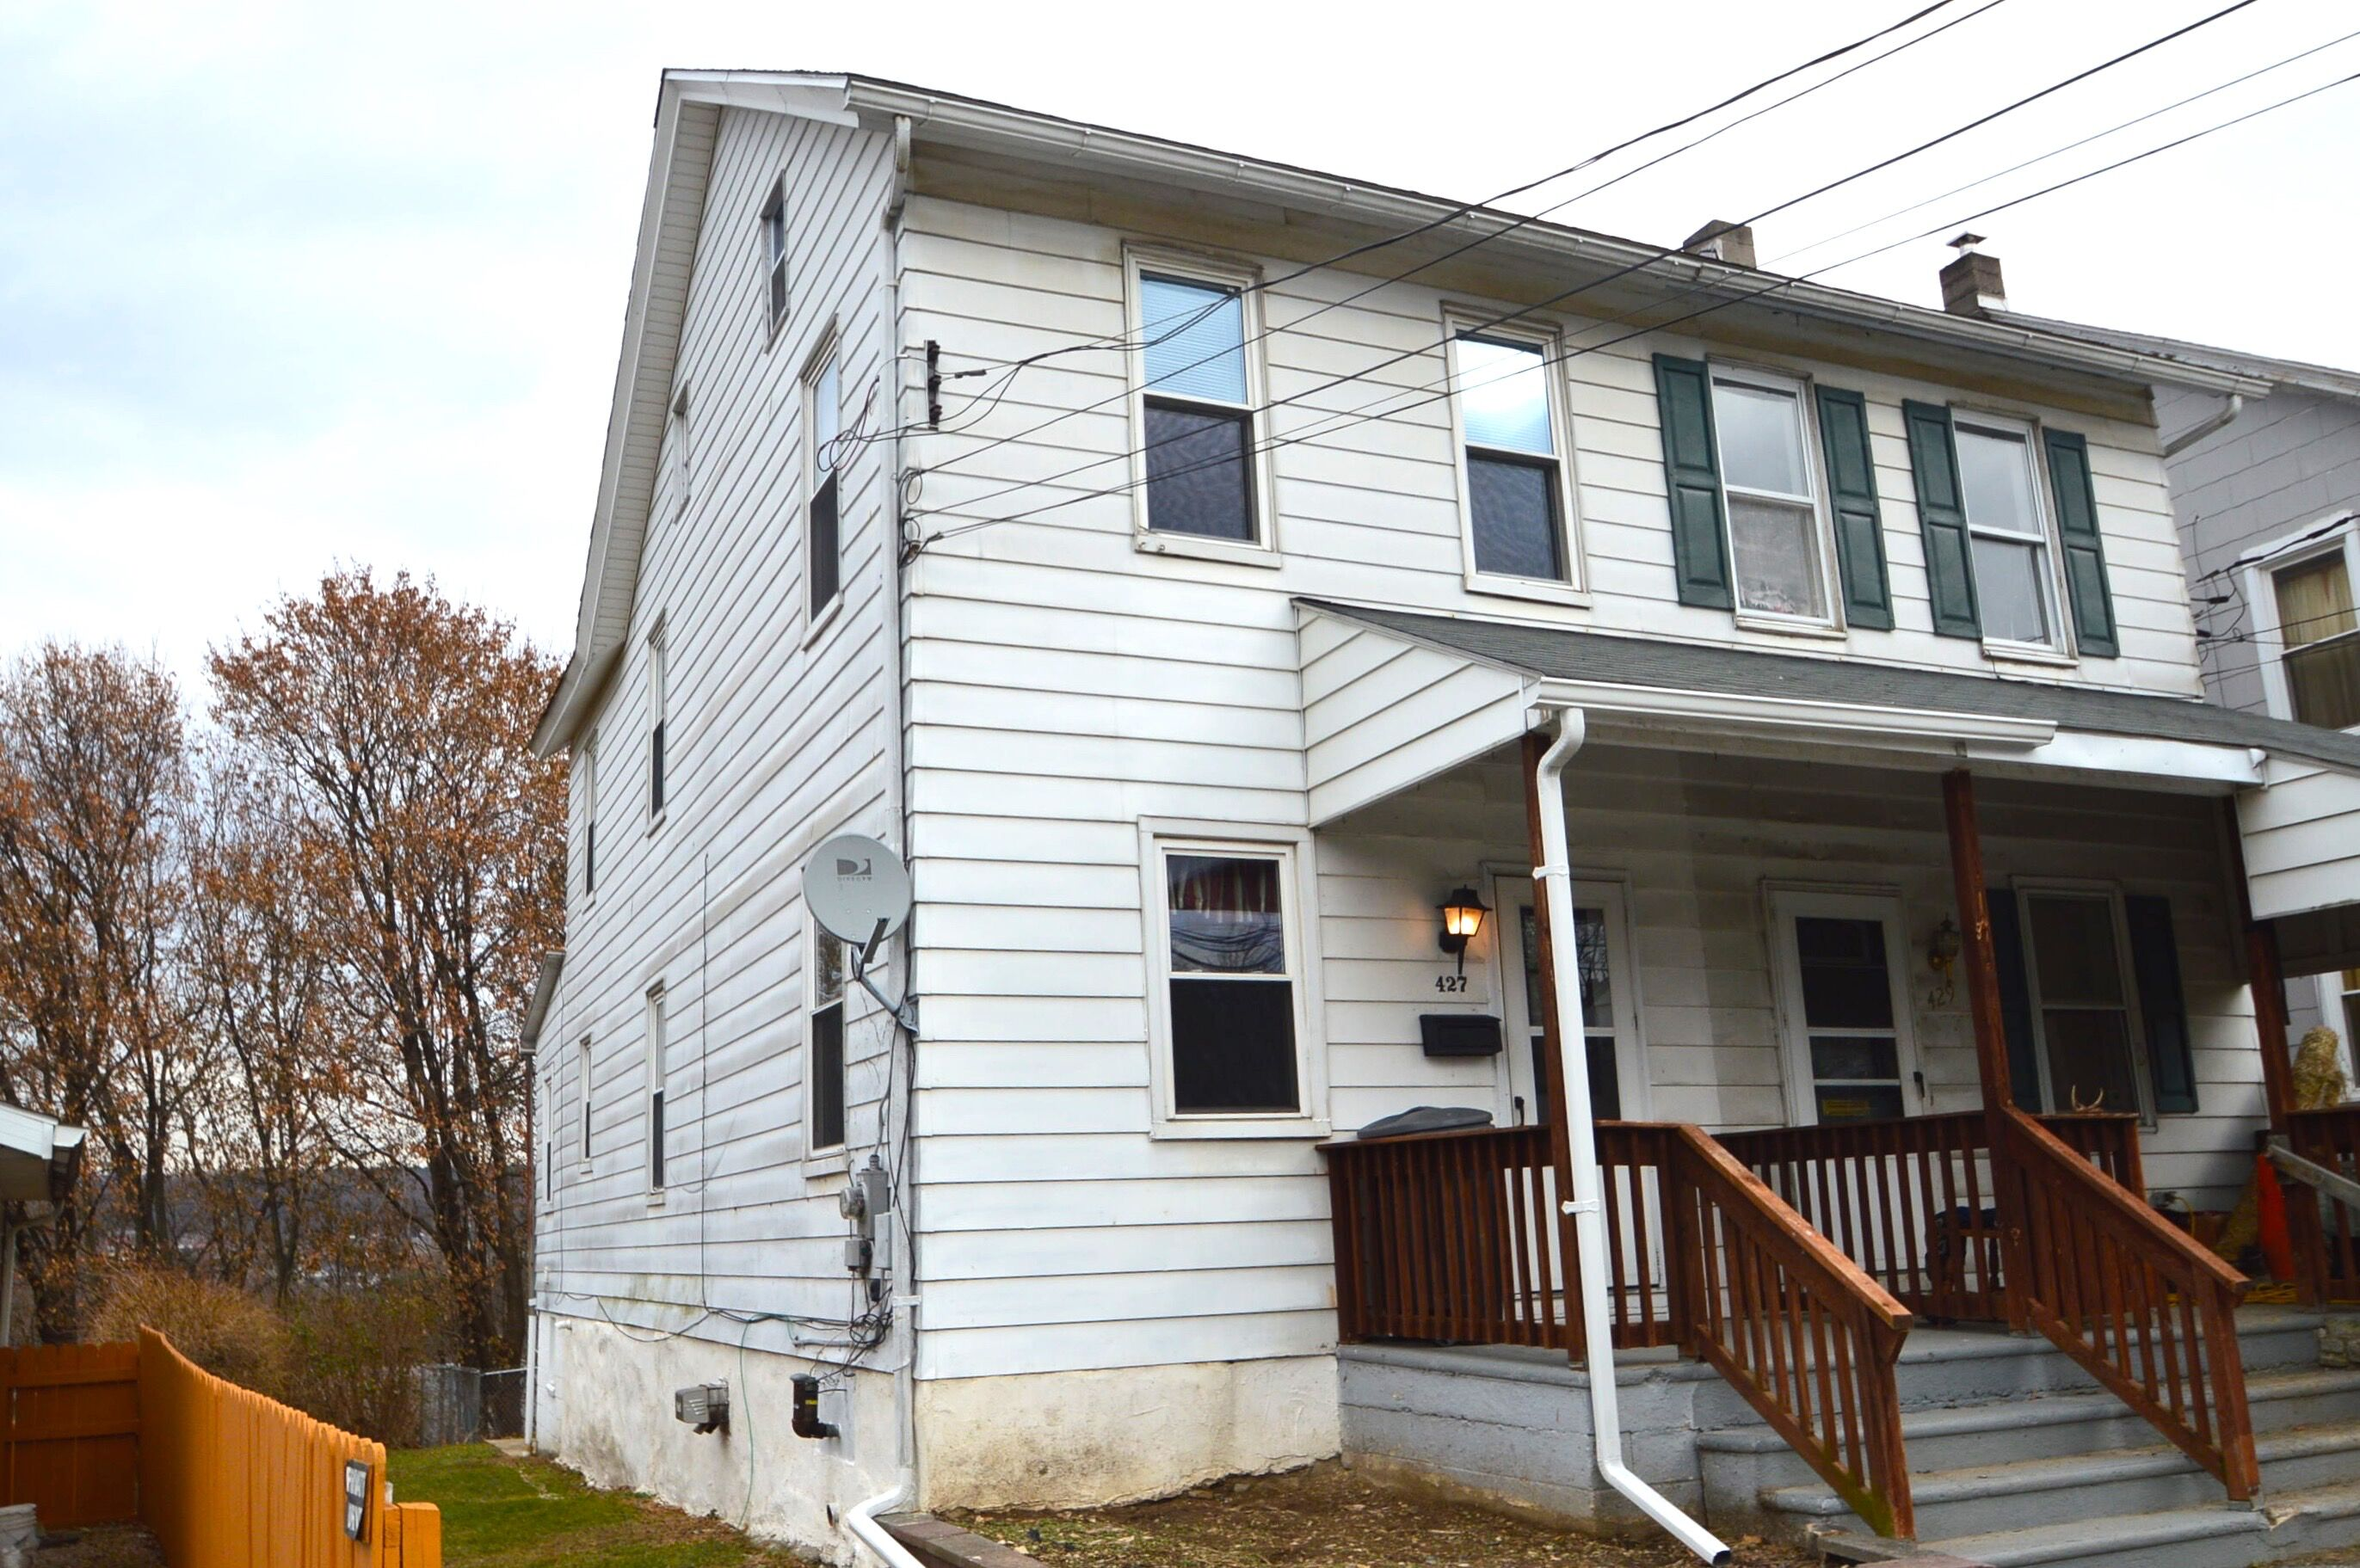 Slatington - 3 Bedroom 1 Bath $69,900